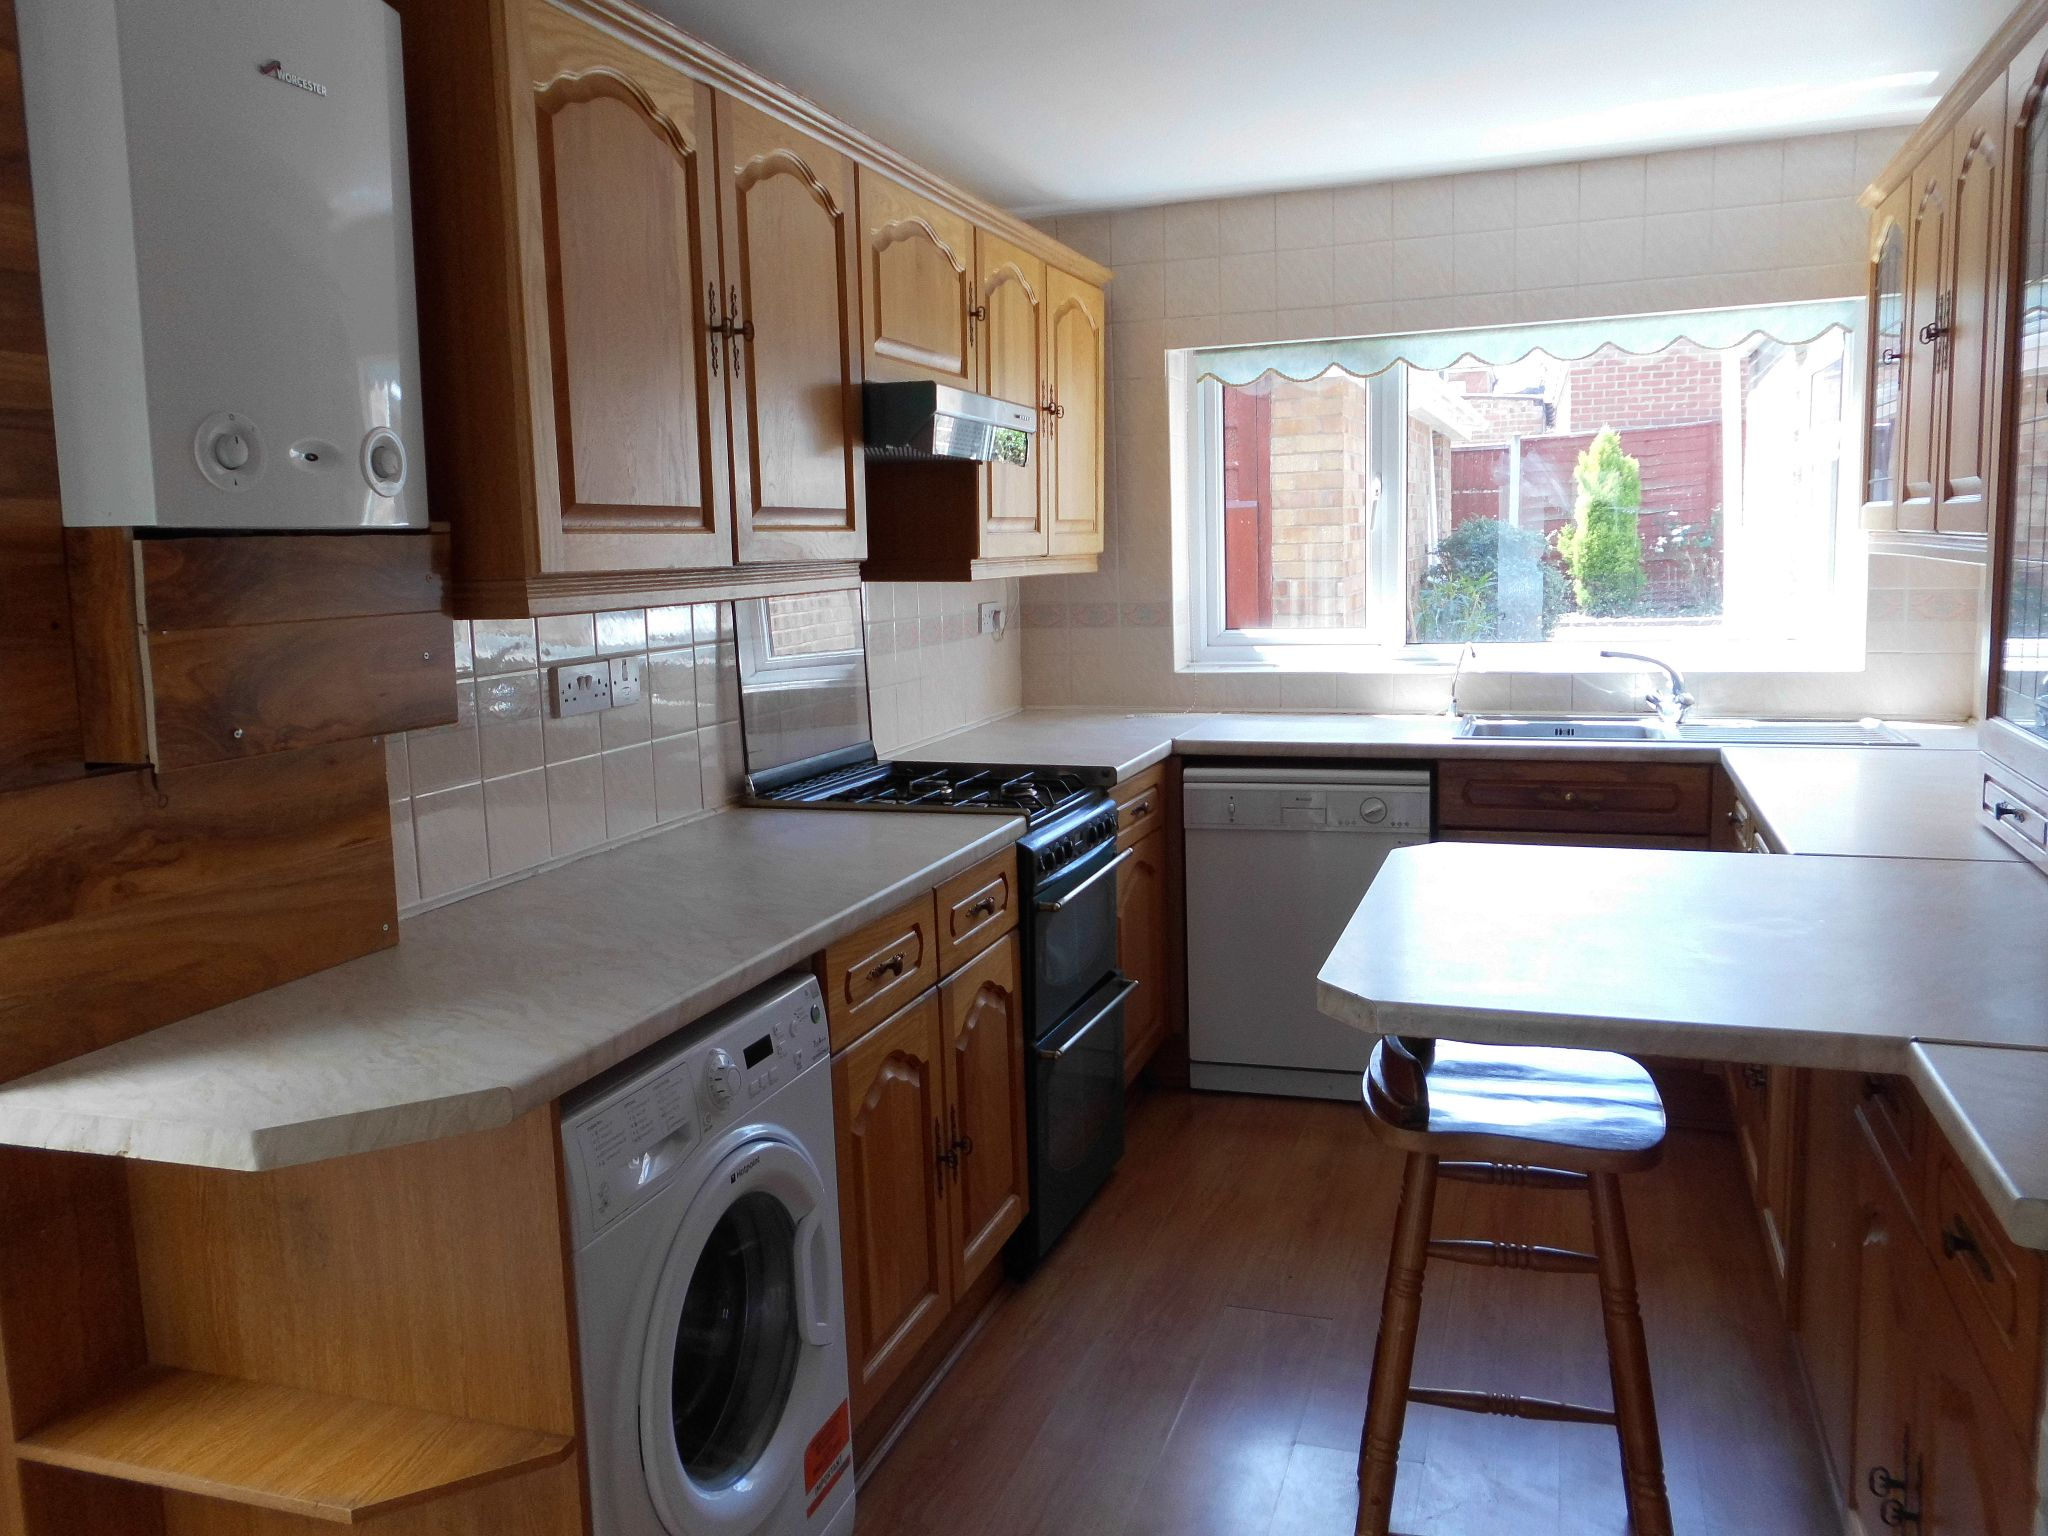 4 bedroom detached house To Let in Leicester - Photograph 8.